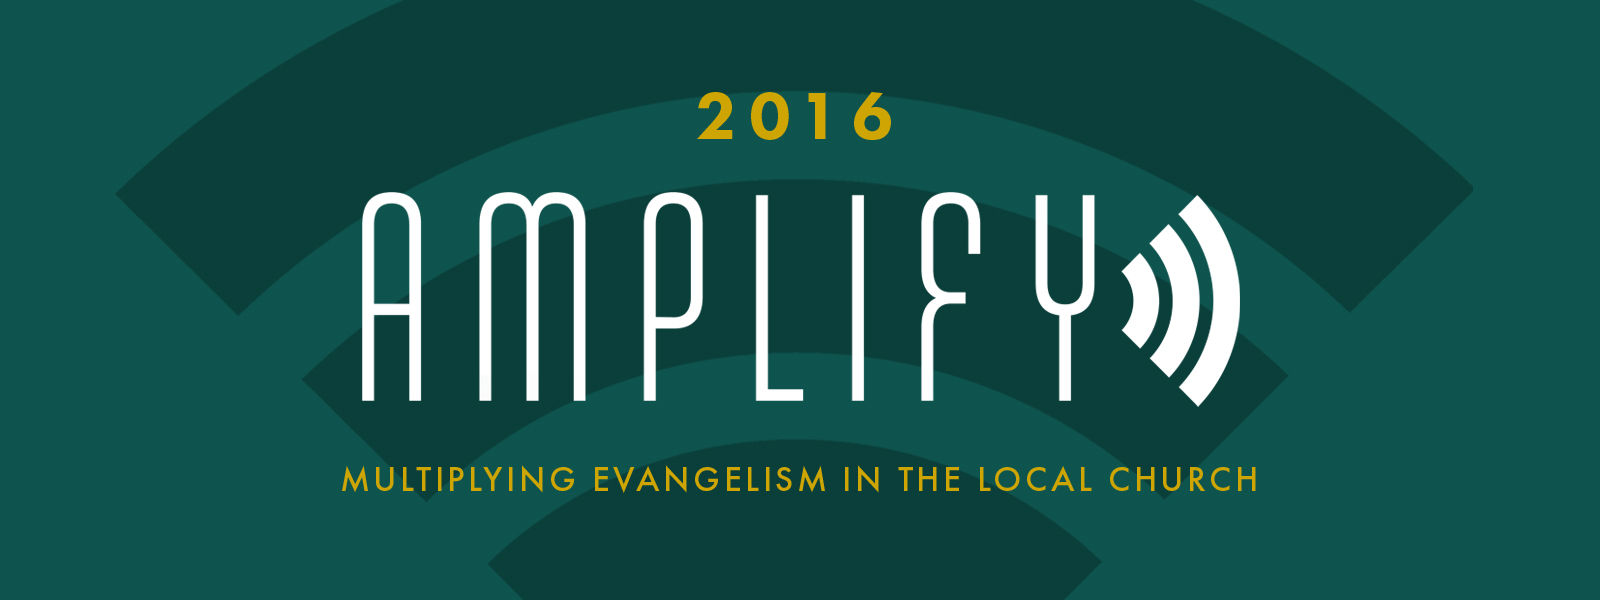 Amplify 2016: Multiplying Evangelism in the Local Church